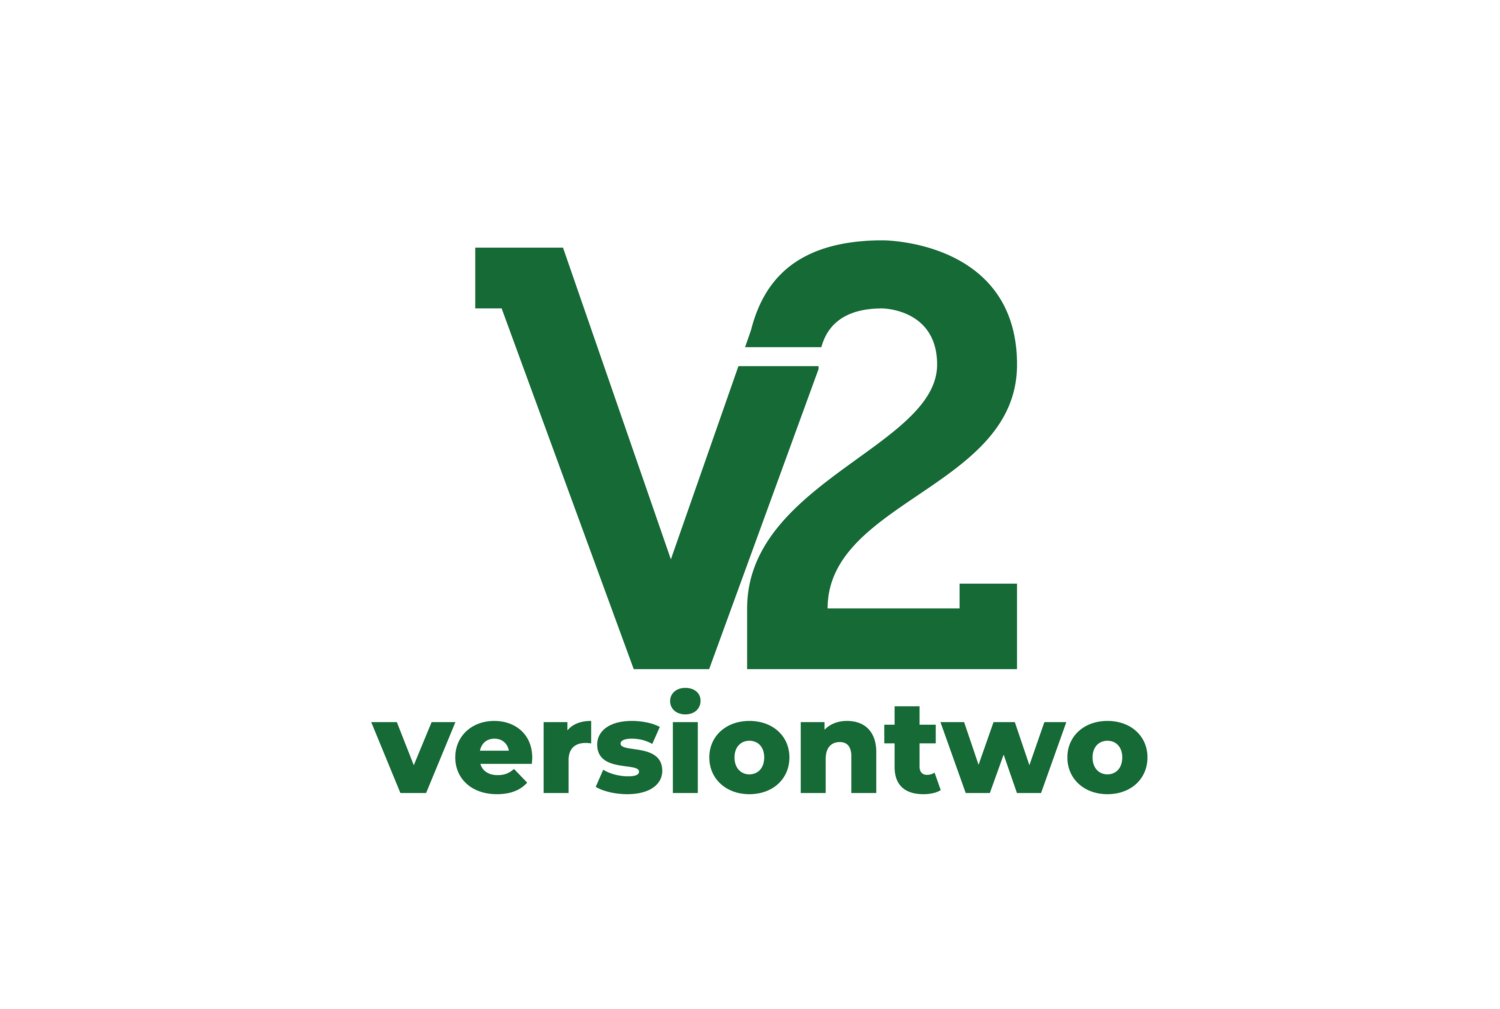 VersionTwo